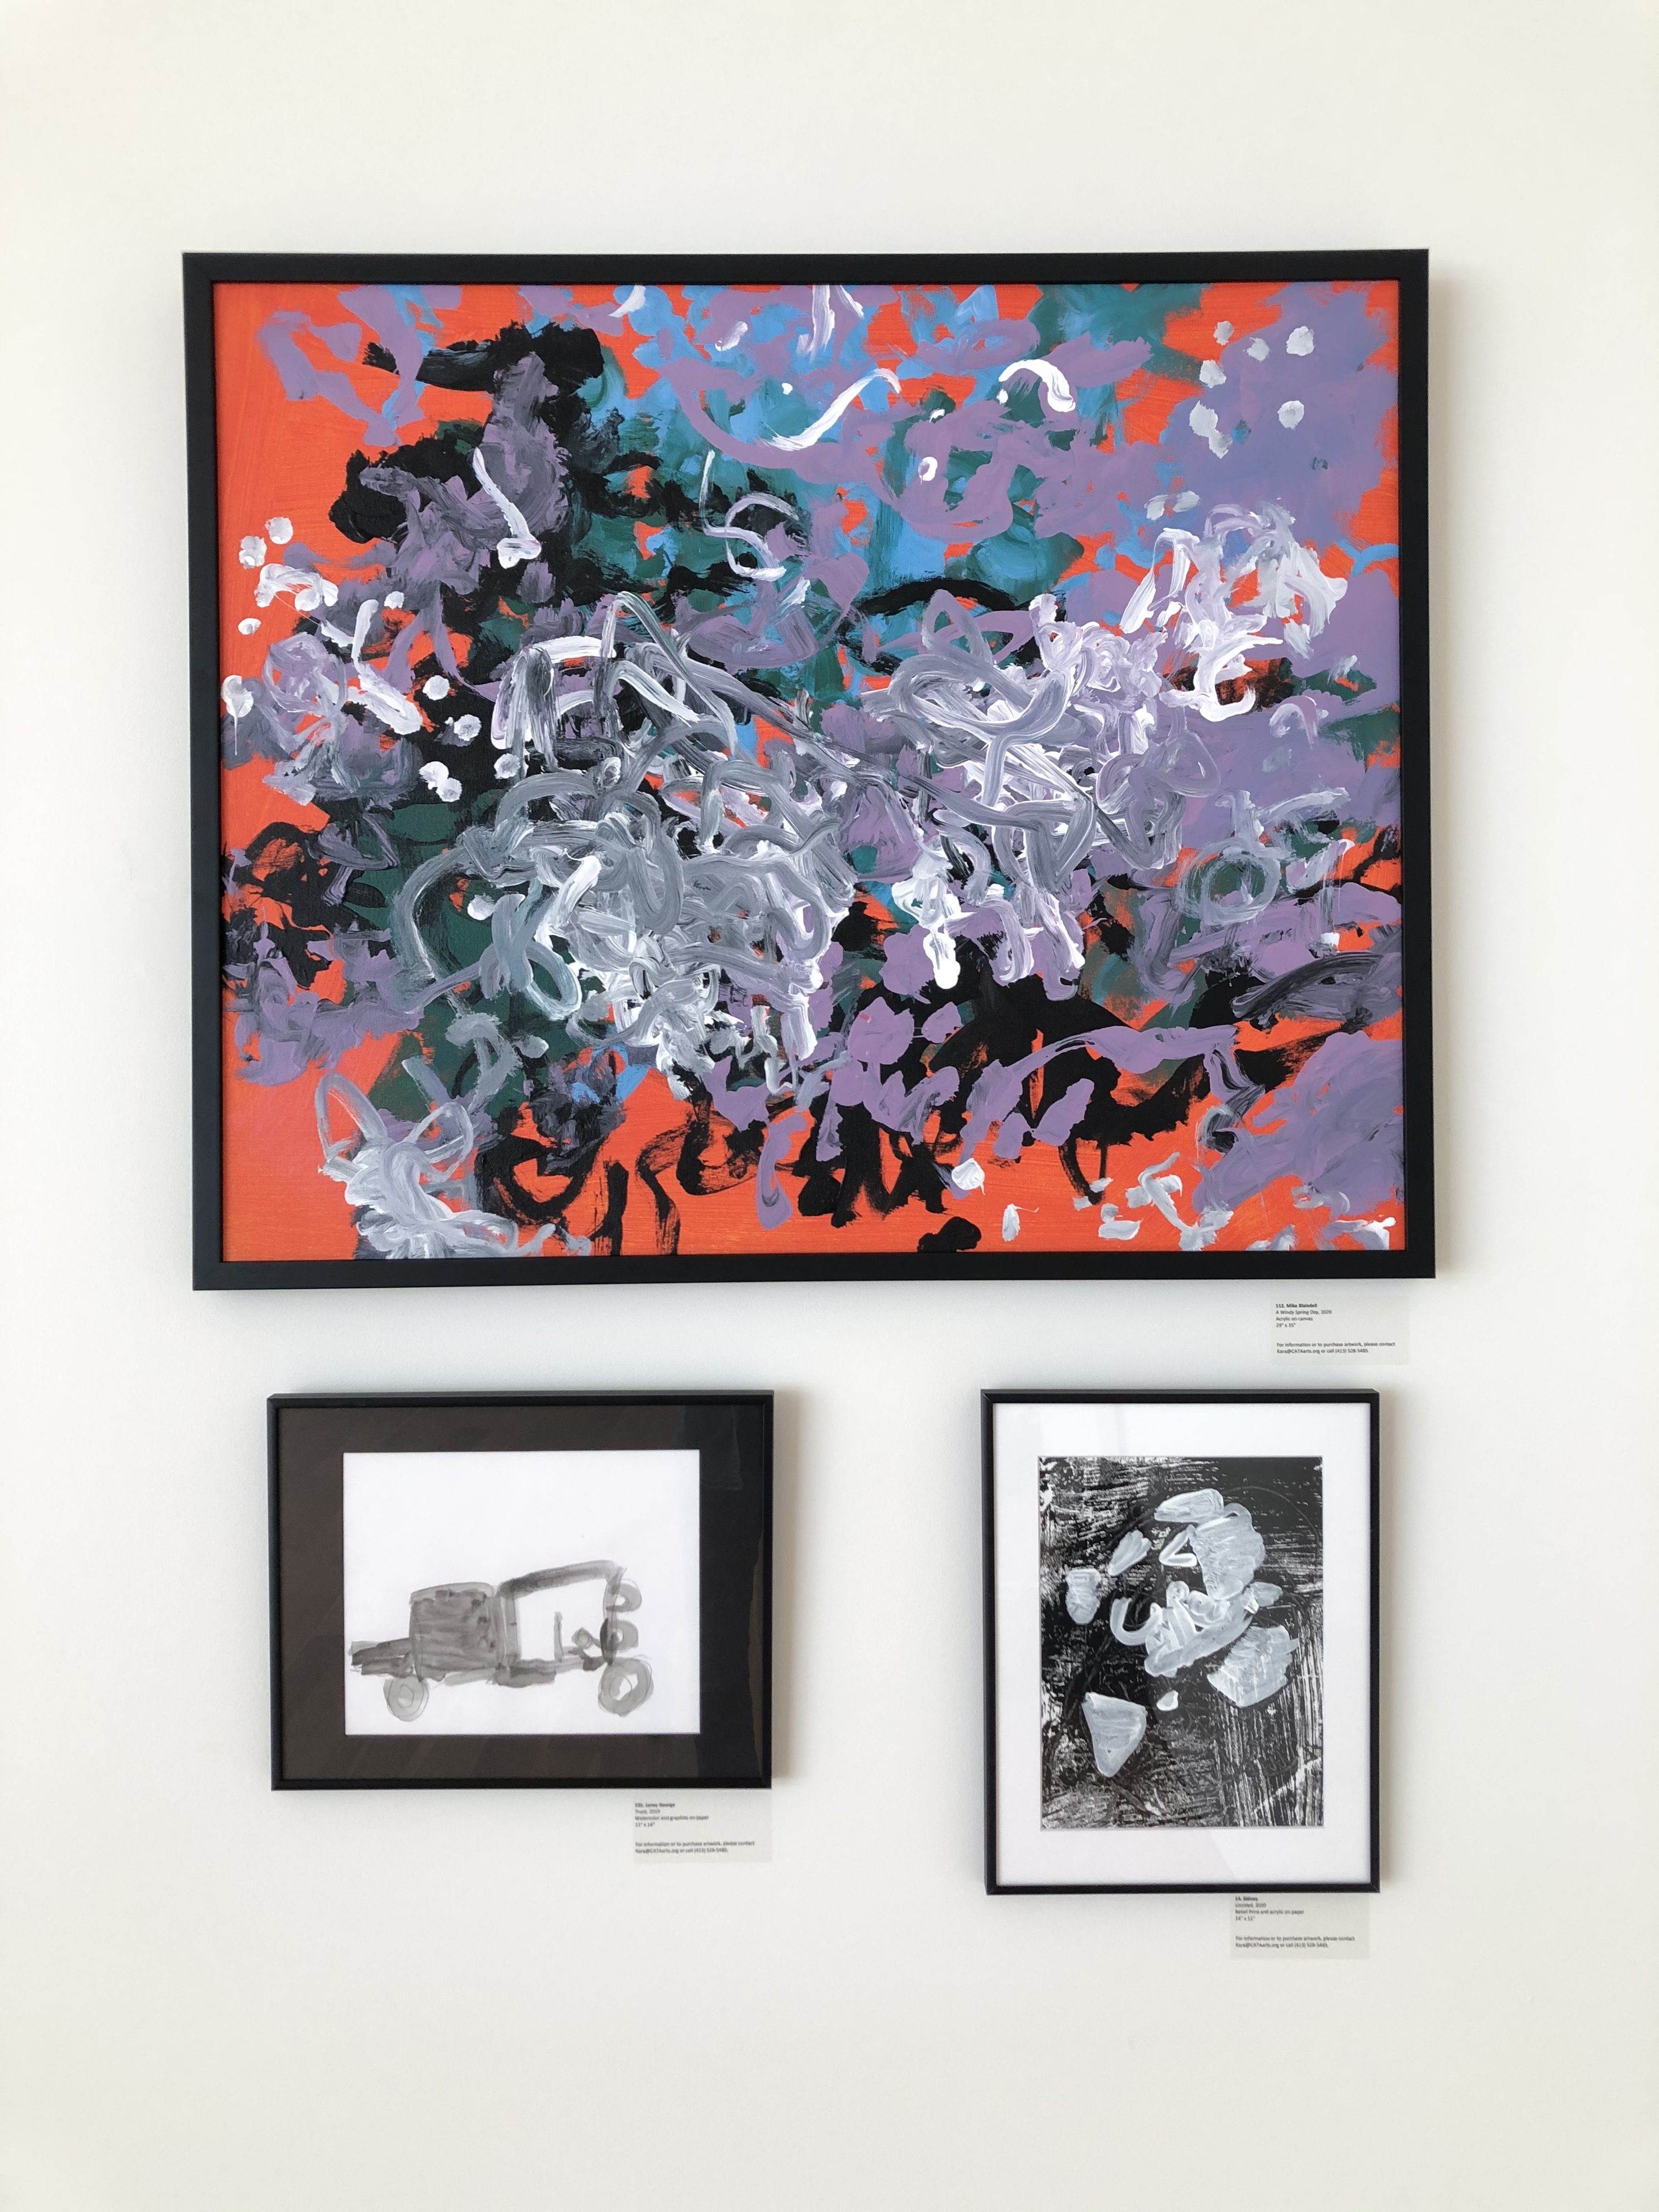 Three paintings on a wall: one large and colorful, two small black and white paintings beneath it.